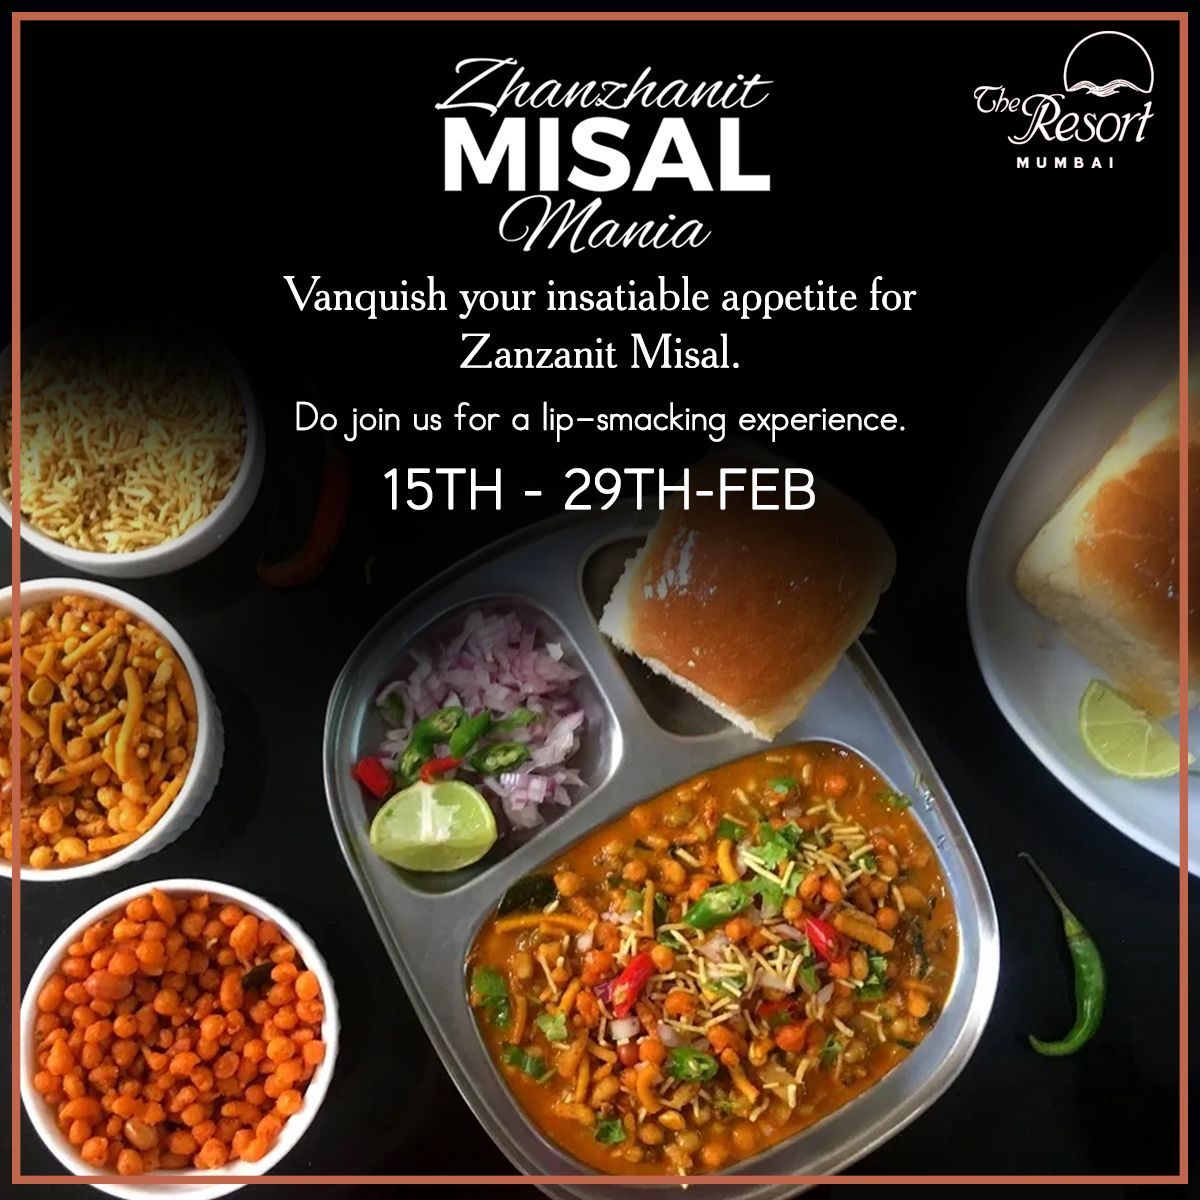 Get ready to satiate your taste buds with our chef's special Zanzanit misal exclusively at The Resort.  Visit us at www.theresortmumbai.com  #TheResort #BeachResort #MumbaiResort #LuxuryResorts #FoodResort #Zanzanit #MisalPav #Misal #ZanzanitMisalMania #Spicy #MaharashtrianDelicacy #MaharashtrianRecipe #Maharashtrafood #FoodLover #MisalLover #Misalpavlover #MisalFest #MisalMania #MumbaiFoodie #Foodie #InstaFoodie #SpicyFoodLover